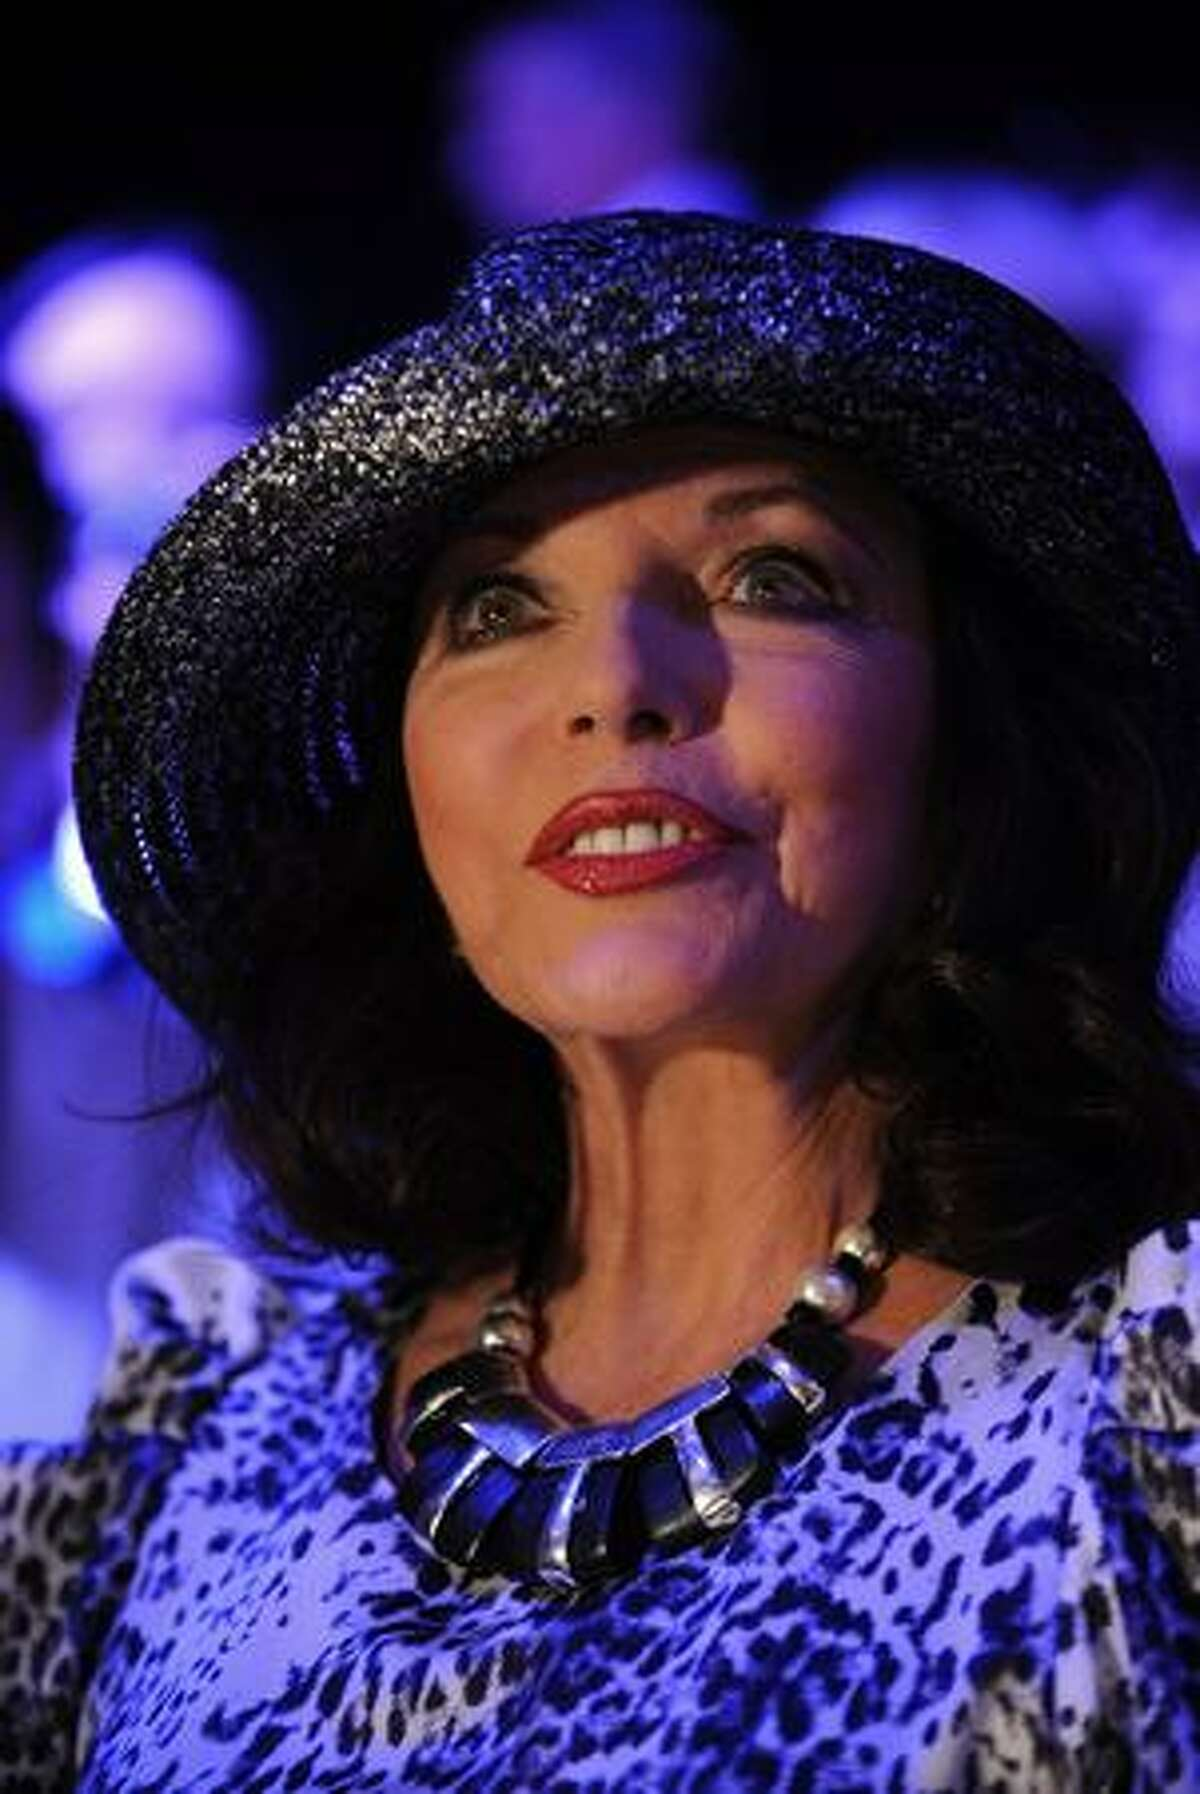 Joan Collins attends the Caroline Charles Fashion Show during London Fashion Week at Somerset House in London, England.